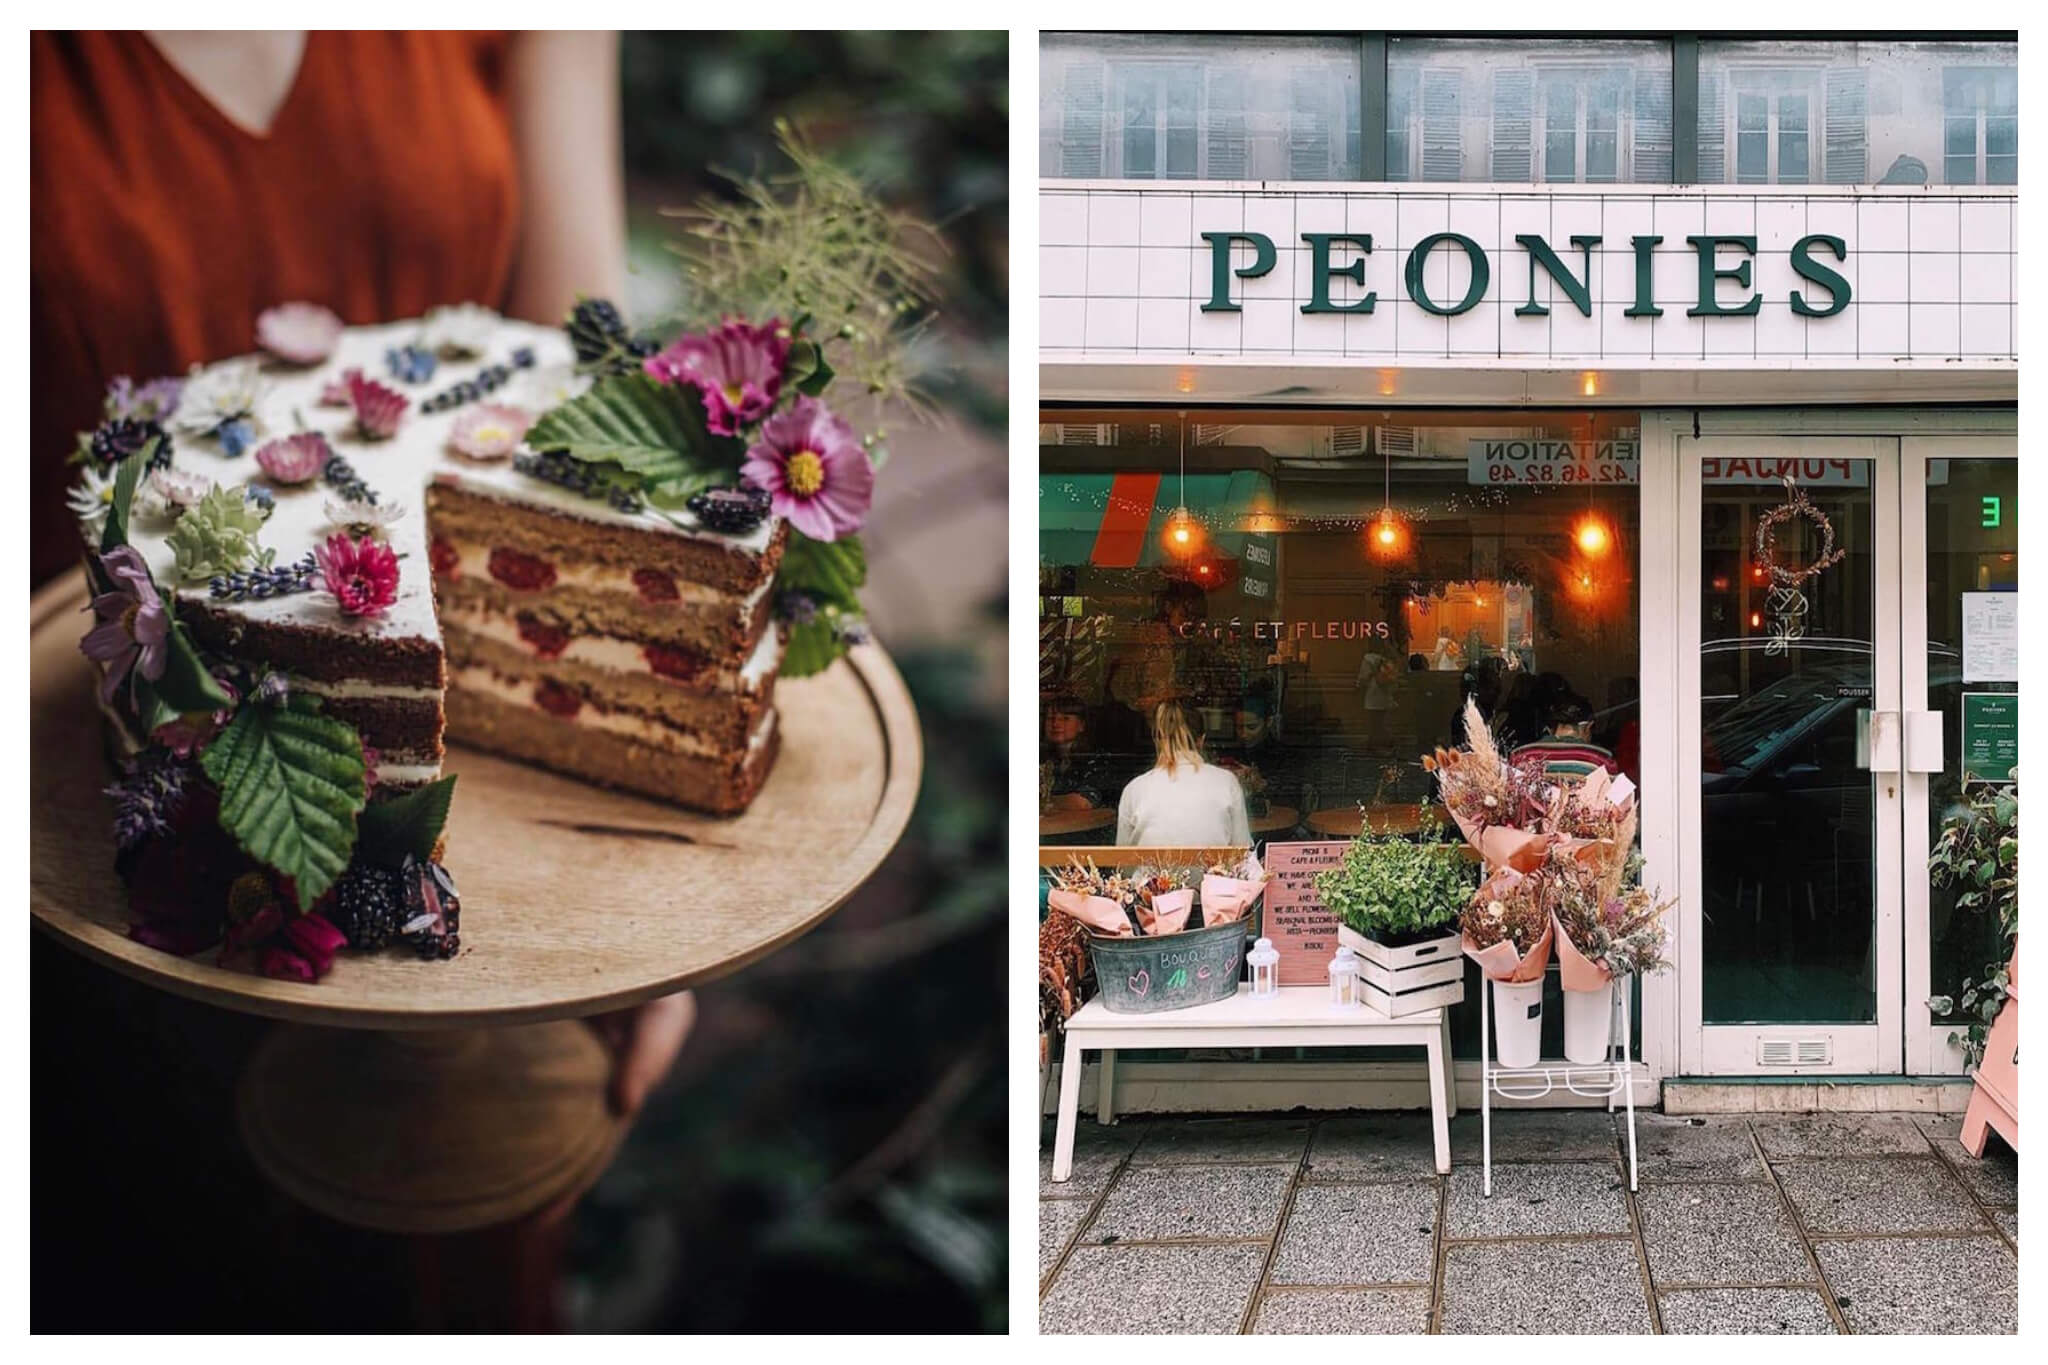 Left: A beautiful layered cake decorated with flowers and berries from Peonies Paris, Right: The storefront of café and flower shop Peonies Paris.